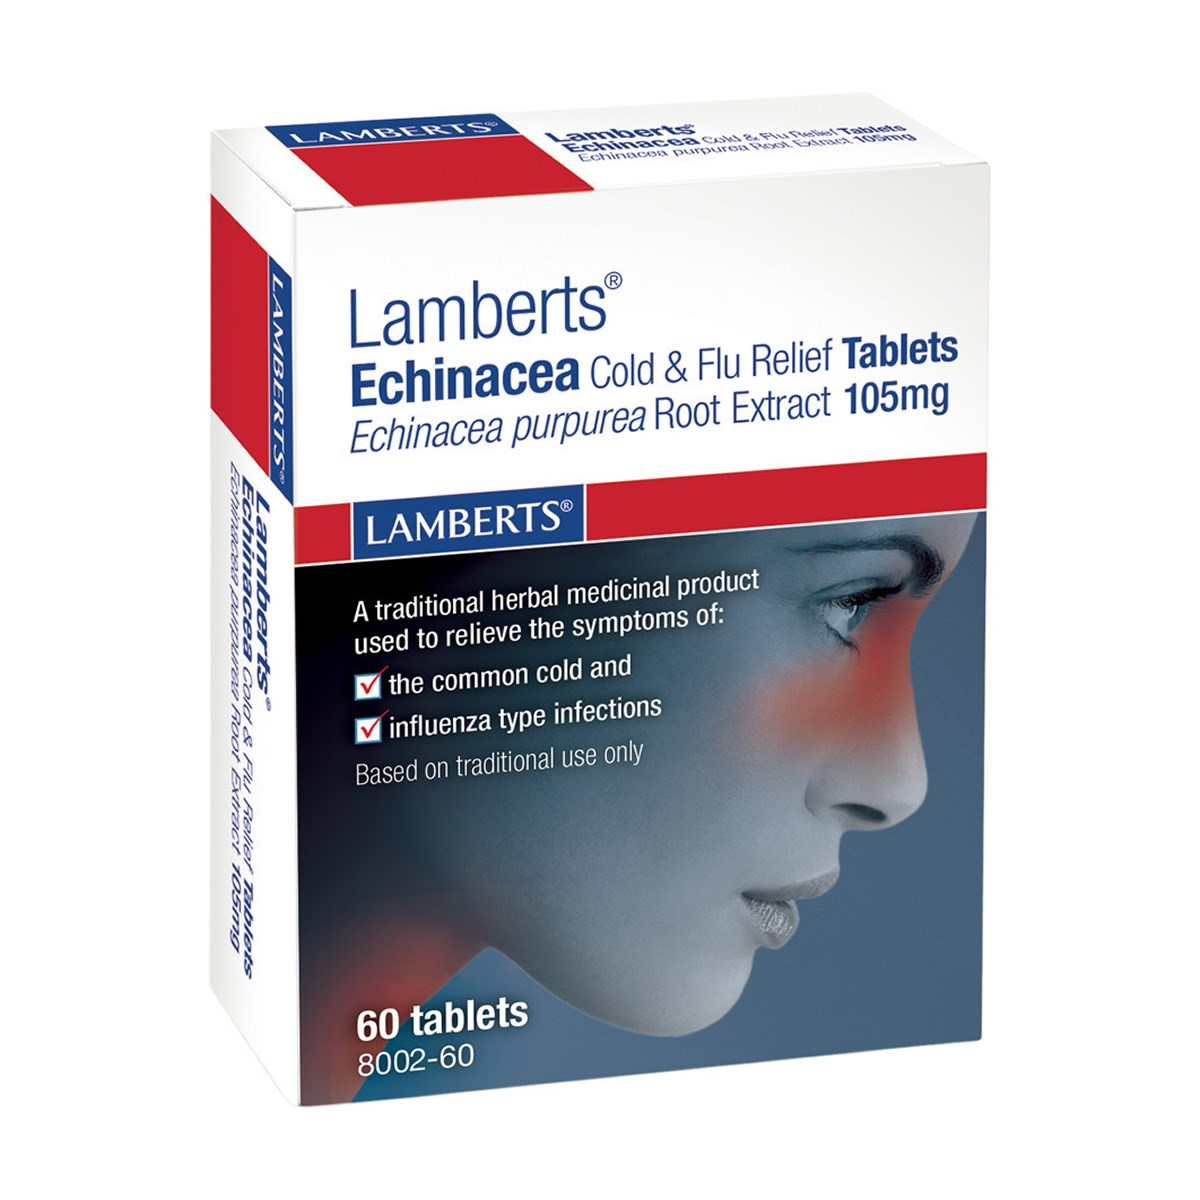 Lamberts Echinacea Cold & Flue Relief 105mg Tablets